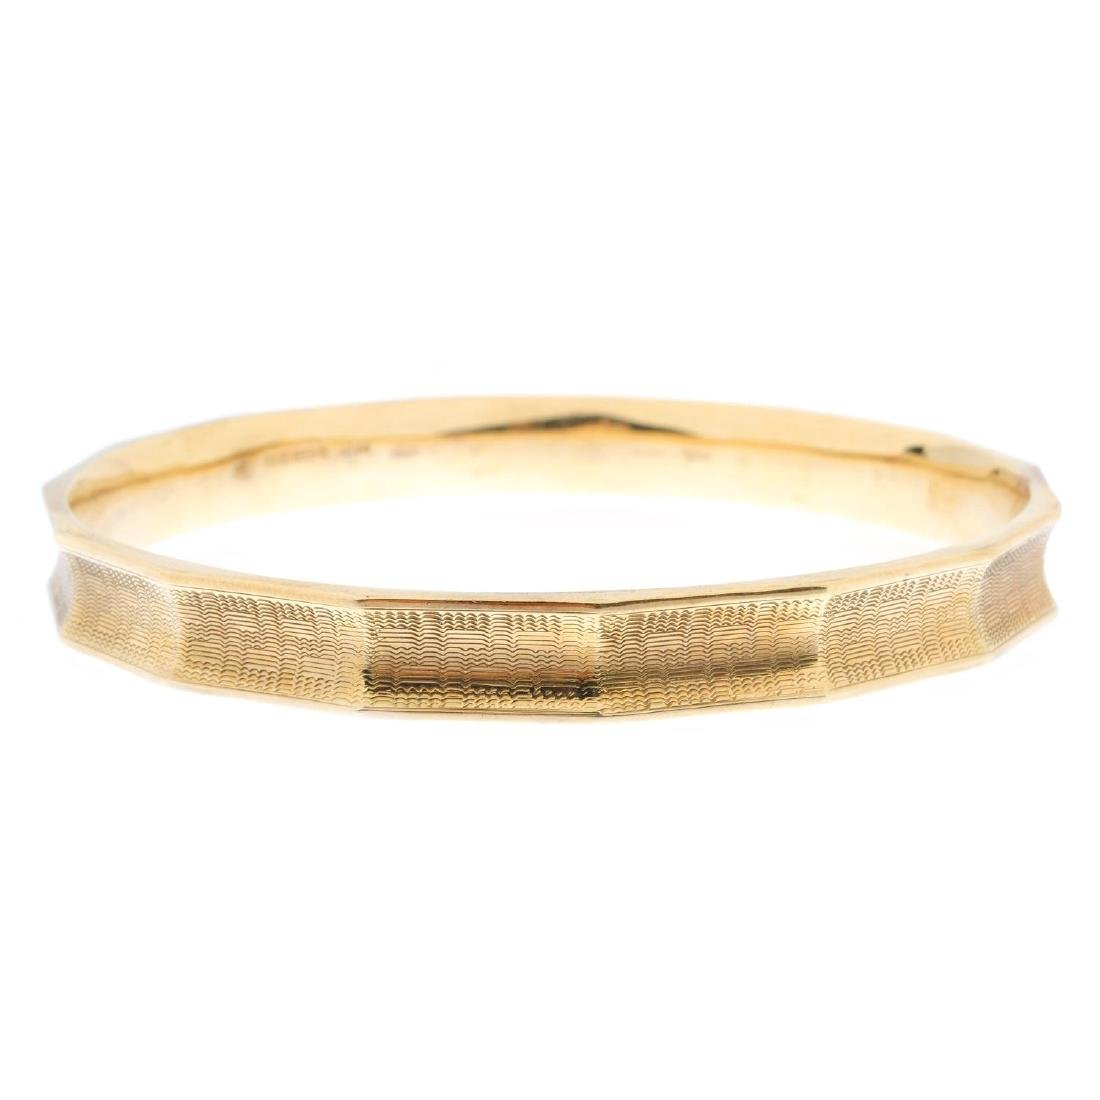 A 9ct gold bangle. Of faceted design, with engine